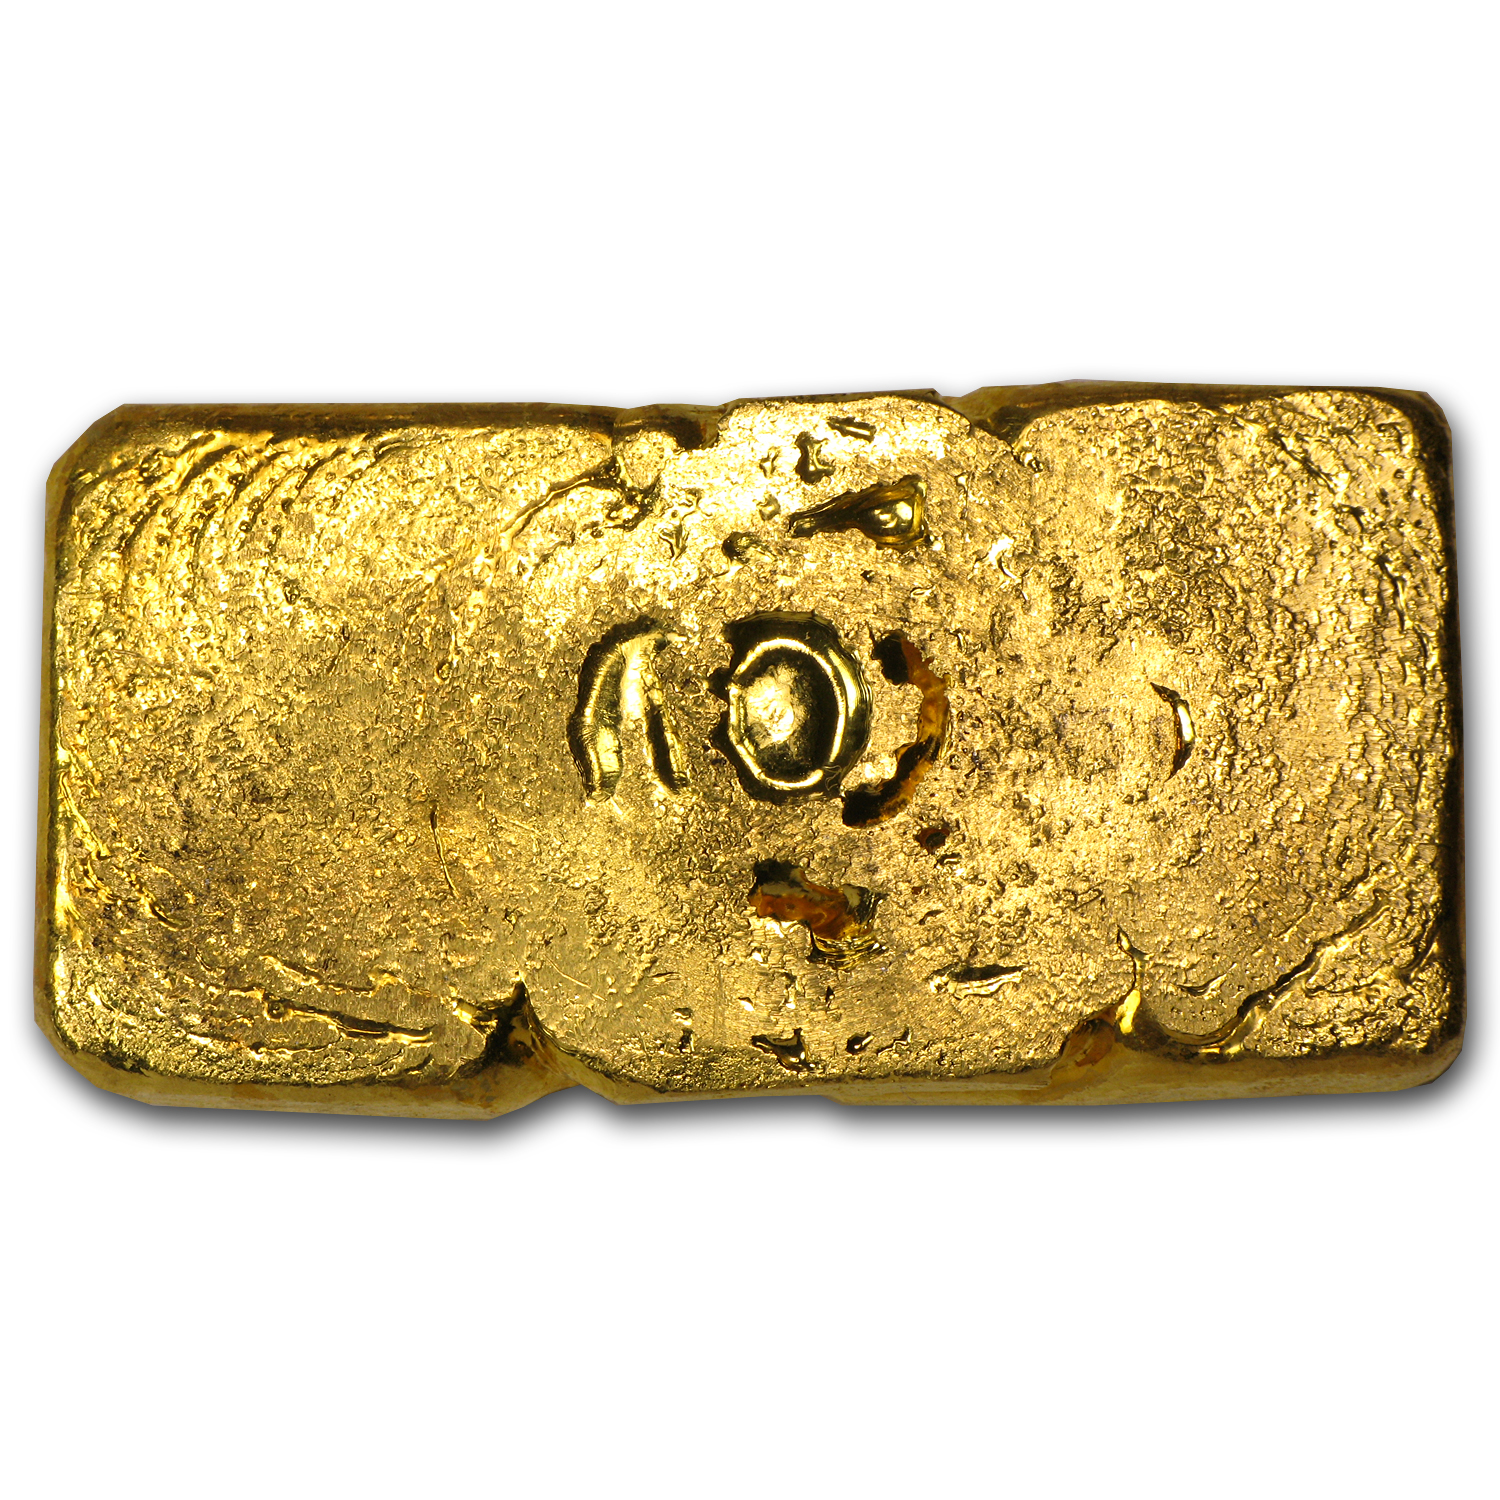 2 oz Gold Bar - Prospector's Gold & Gems